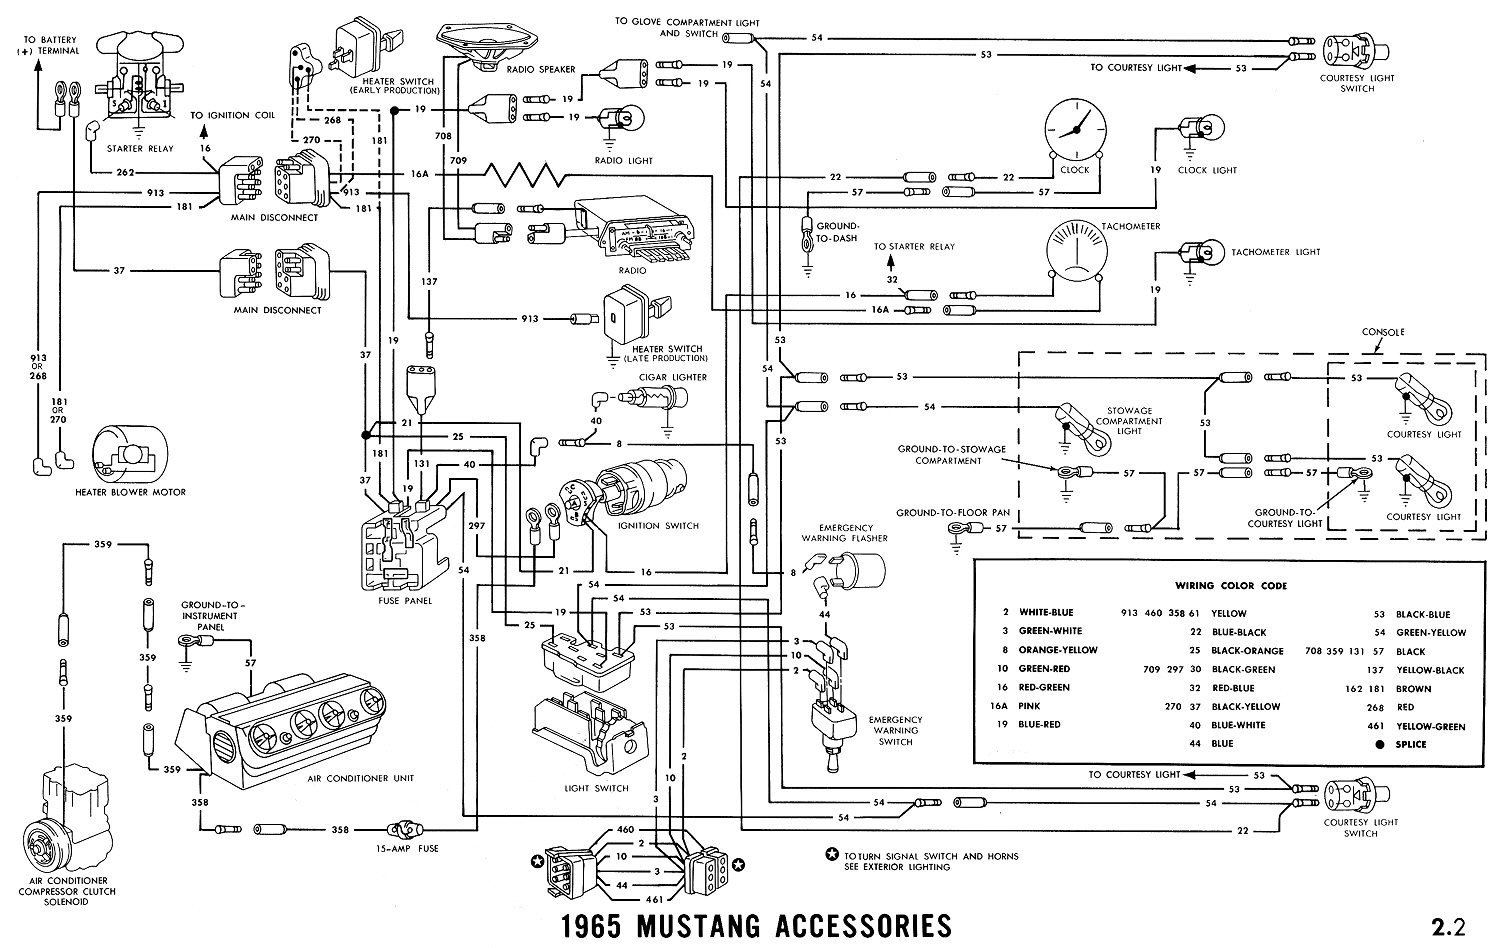 1965i 1965 mustang wiring diagrams average joe restoration Turn Signal Relay Wiring Diagram at mr168.co